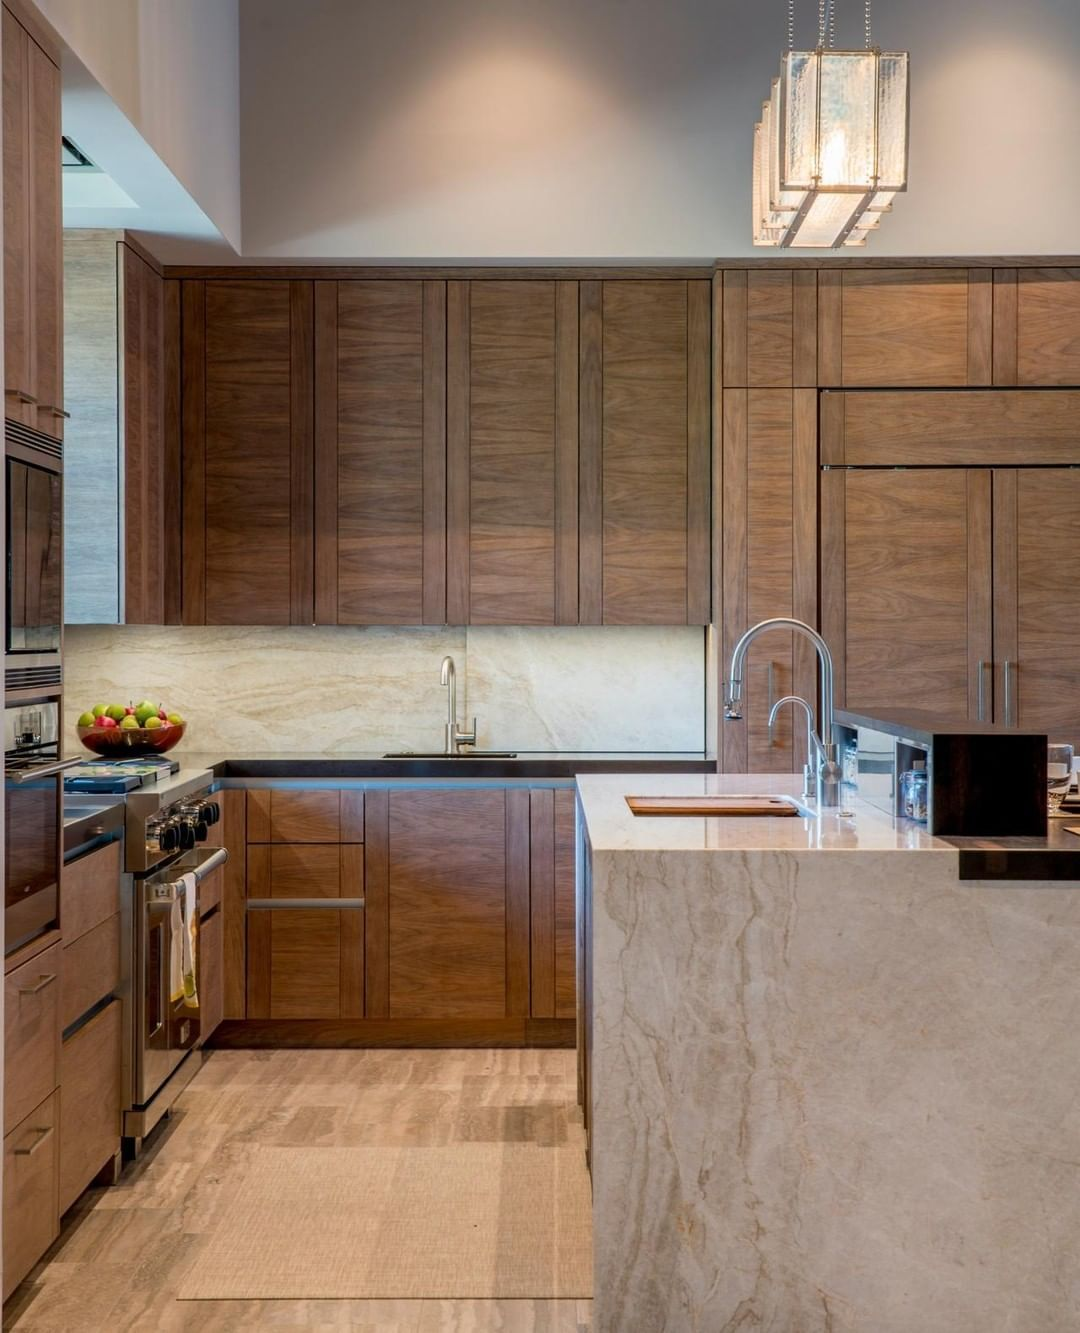 Dering Hall On Instagram A Desert Kitchen With Modern Walnut Cabinets And A Waterfall Island By Coope Walnut Cabinets Walnut Kitchen Walnut Kitchen Cabinets